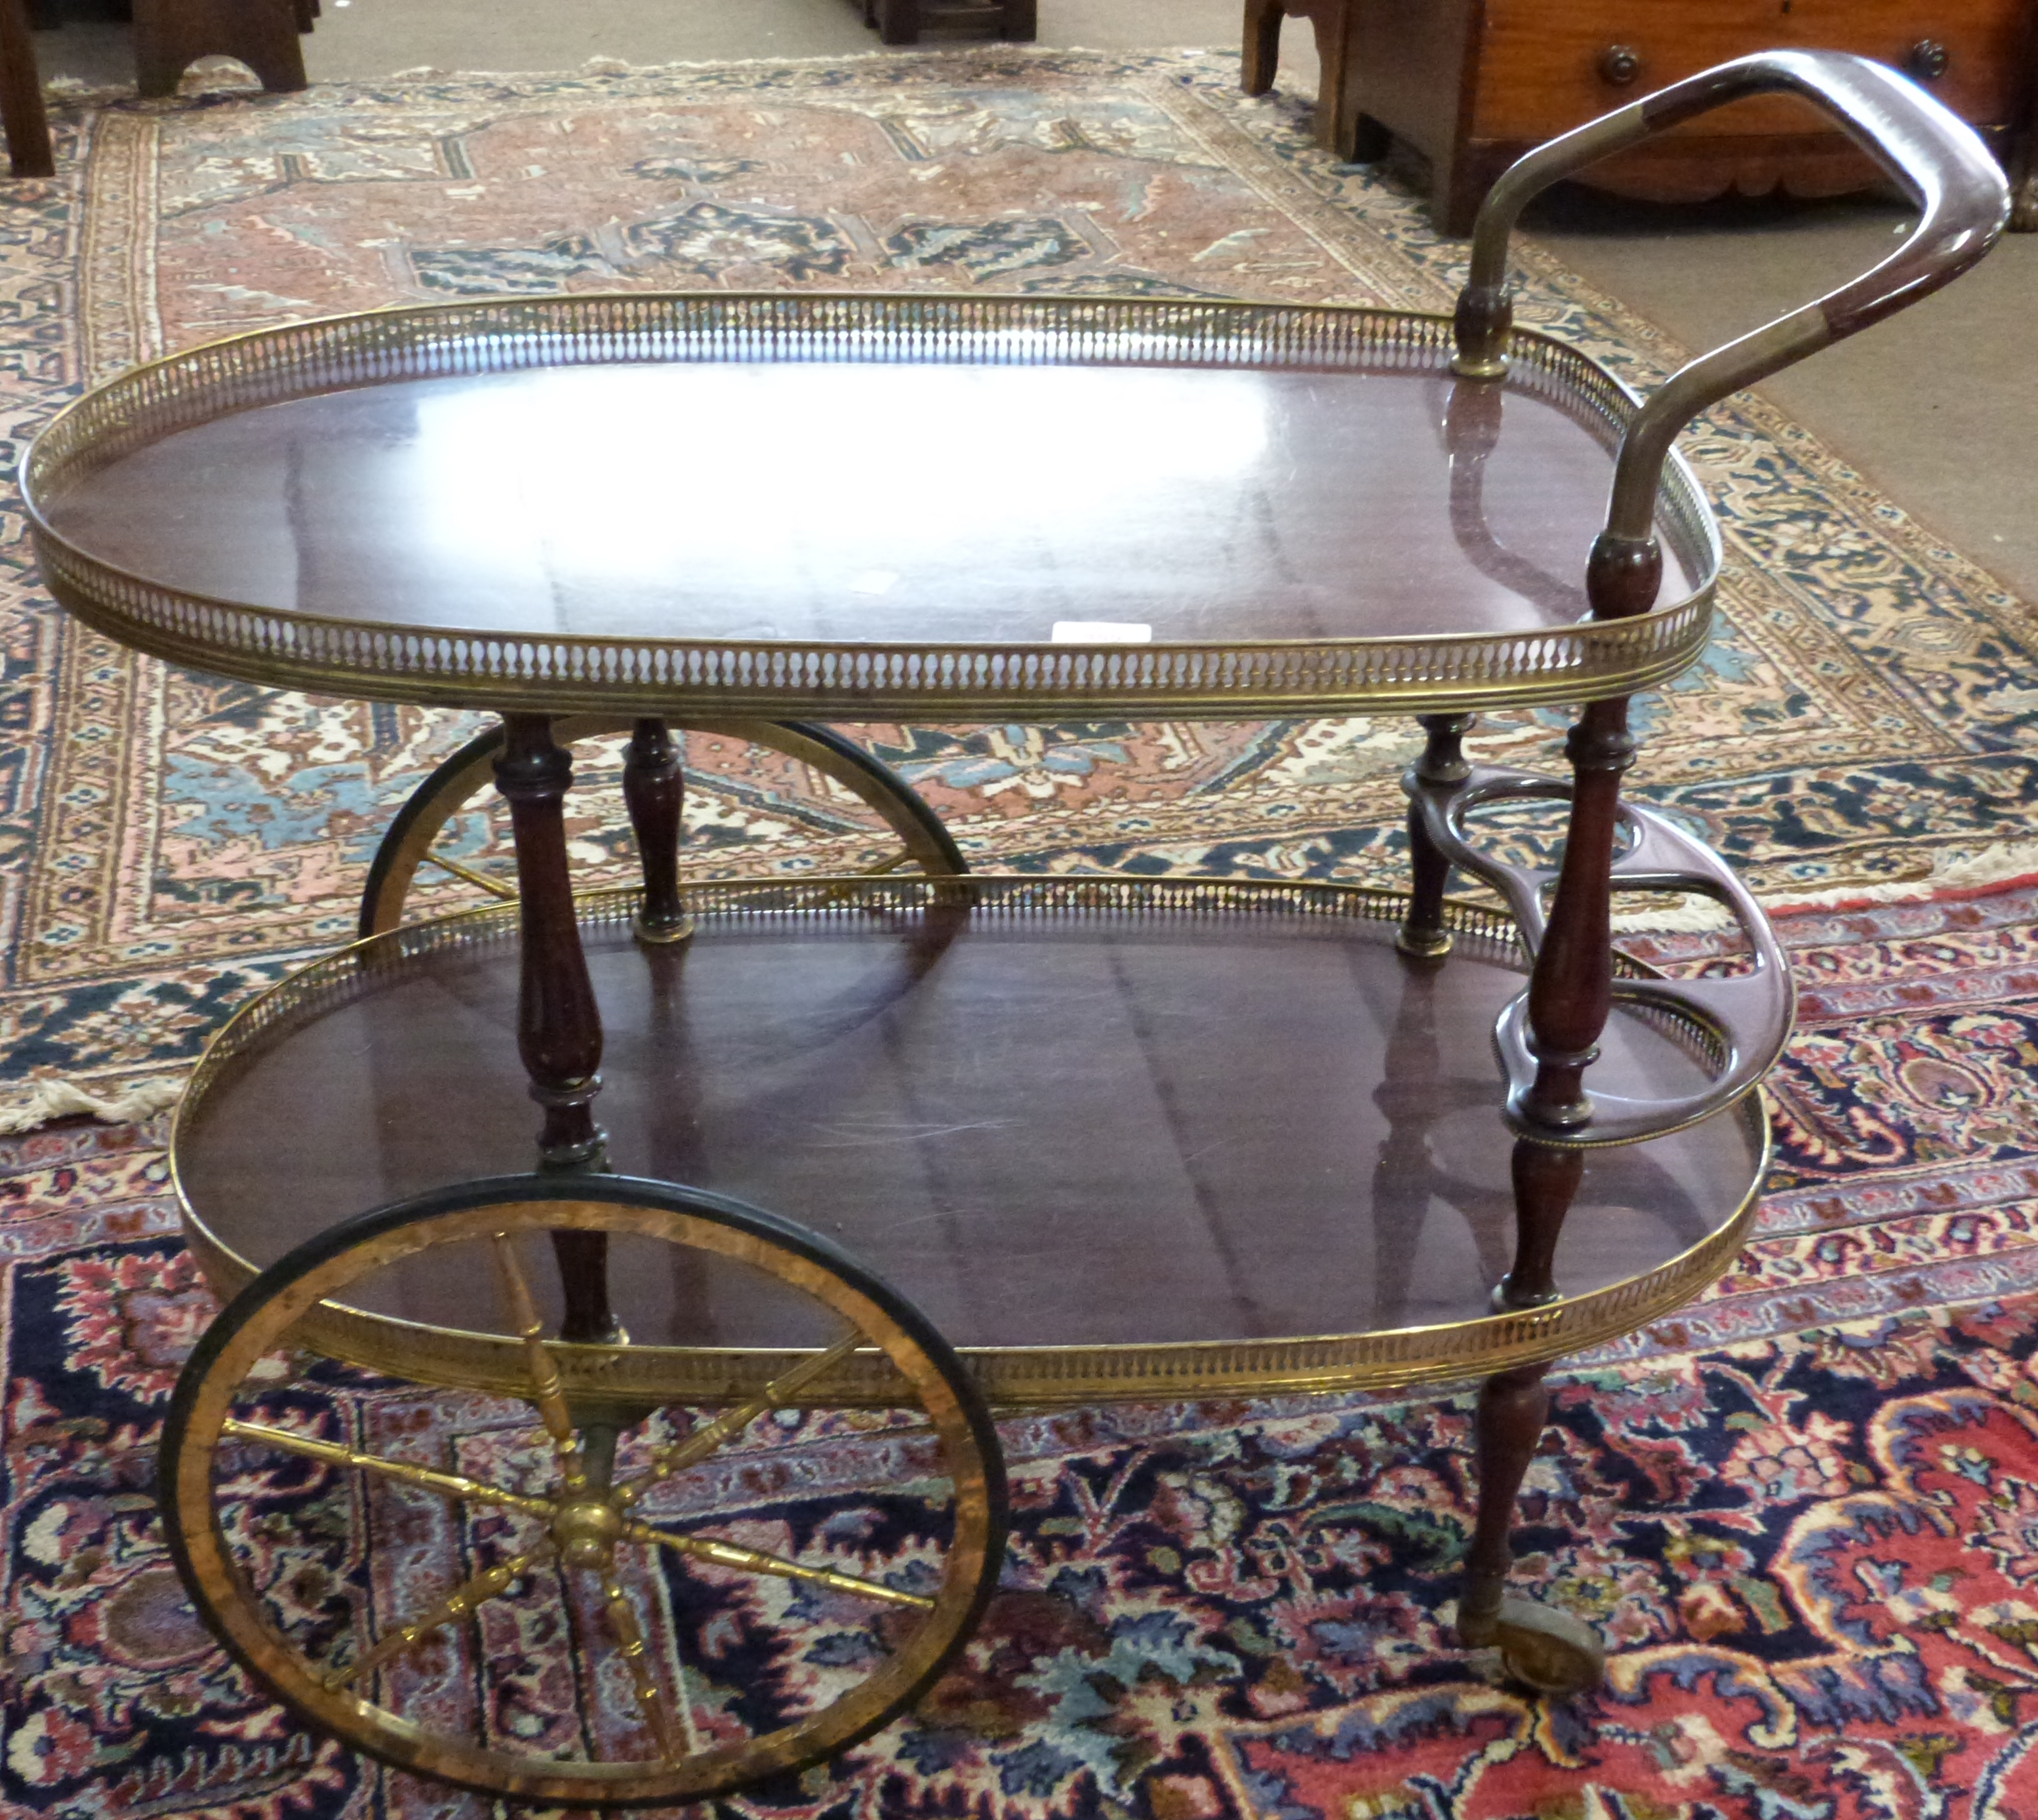 Mahogany effect and gilt decorative tea trolley, length approx 80cm - Image 2 of 3